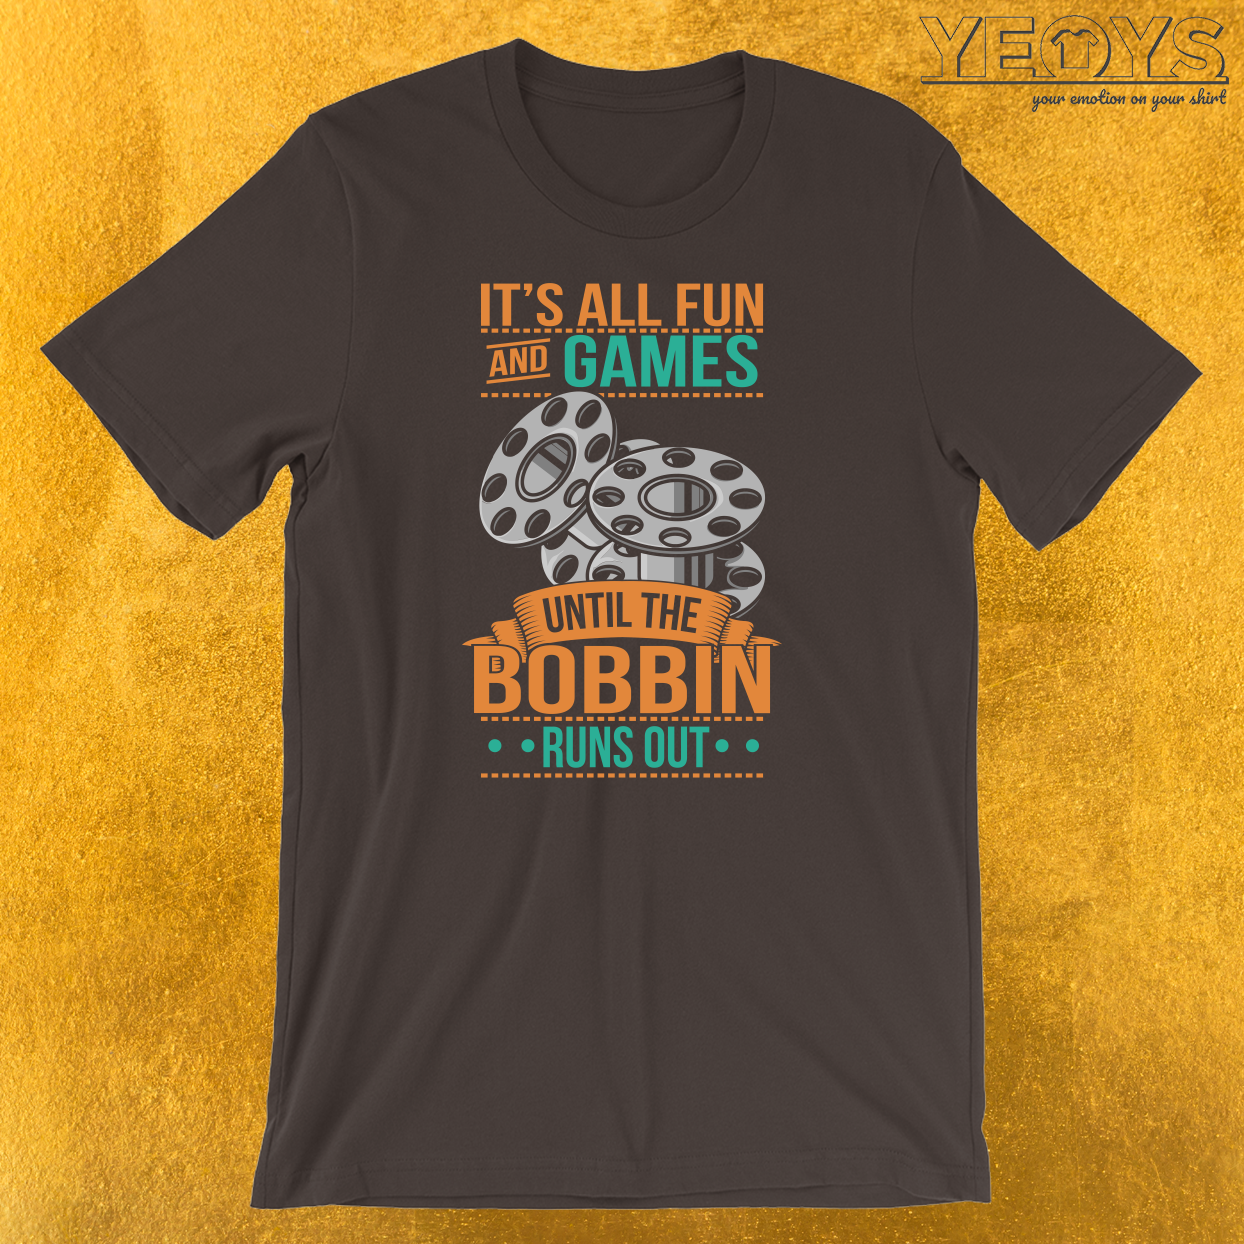 It's All Fun And Games Until The Bobbin Runs Out T-Shirt